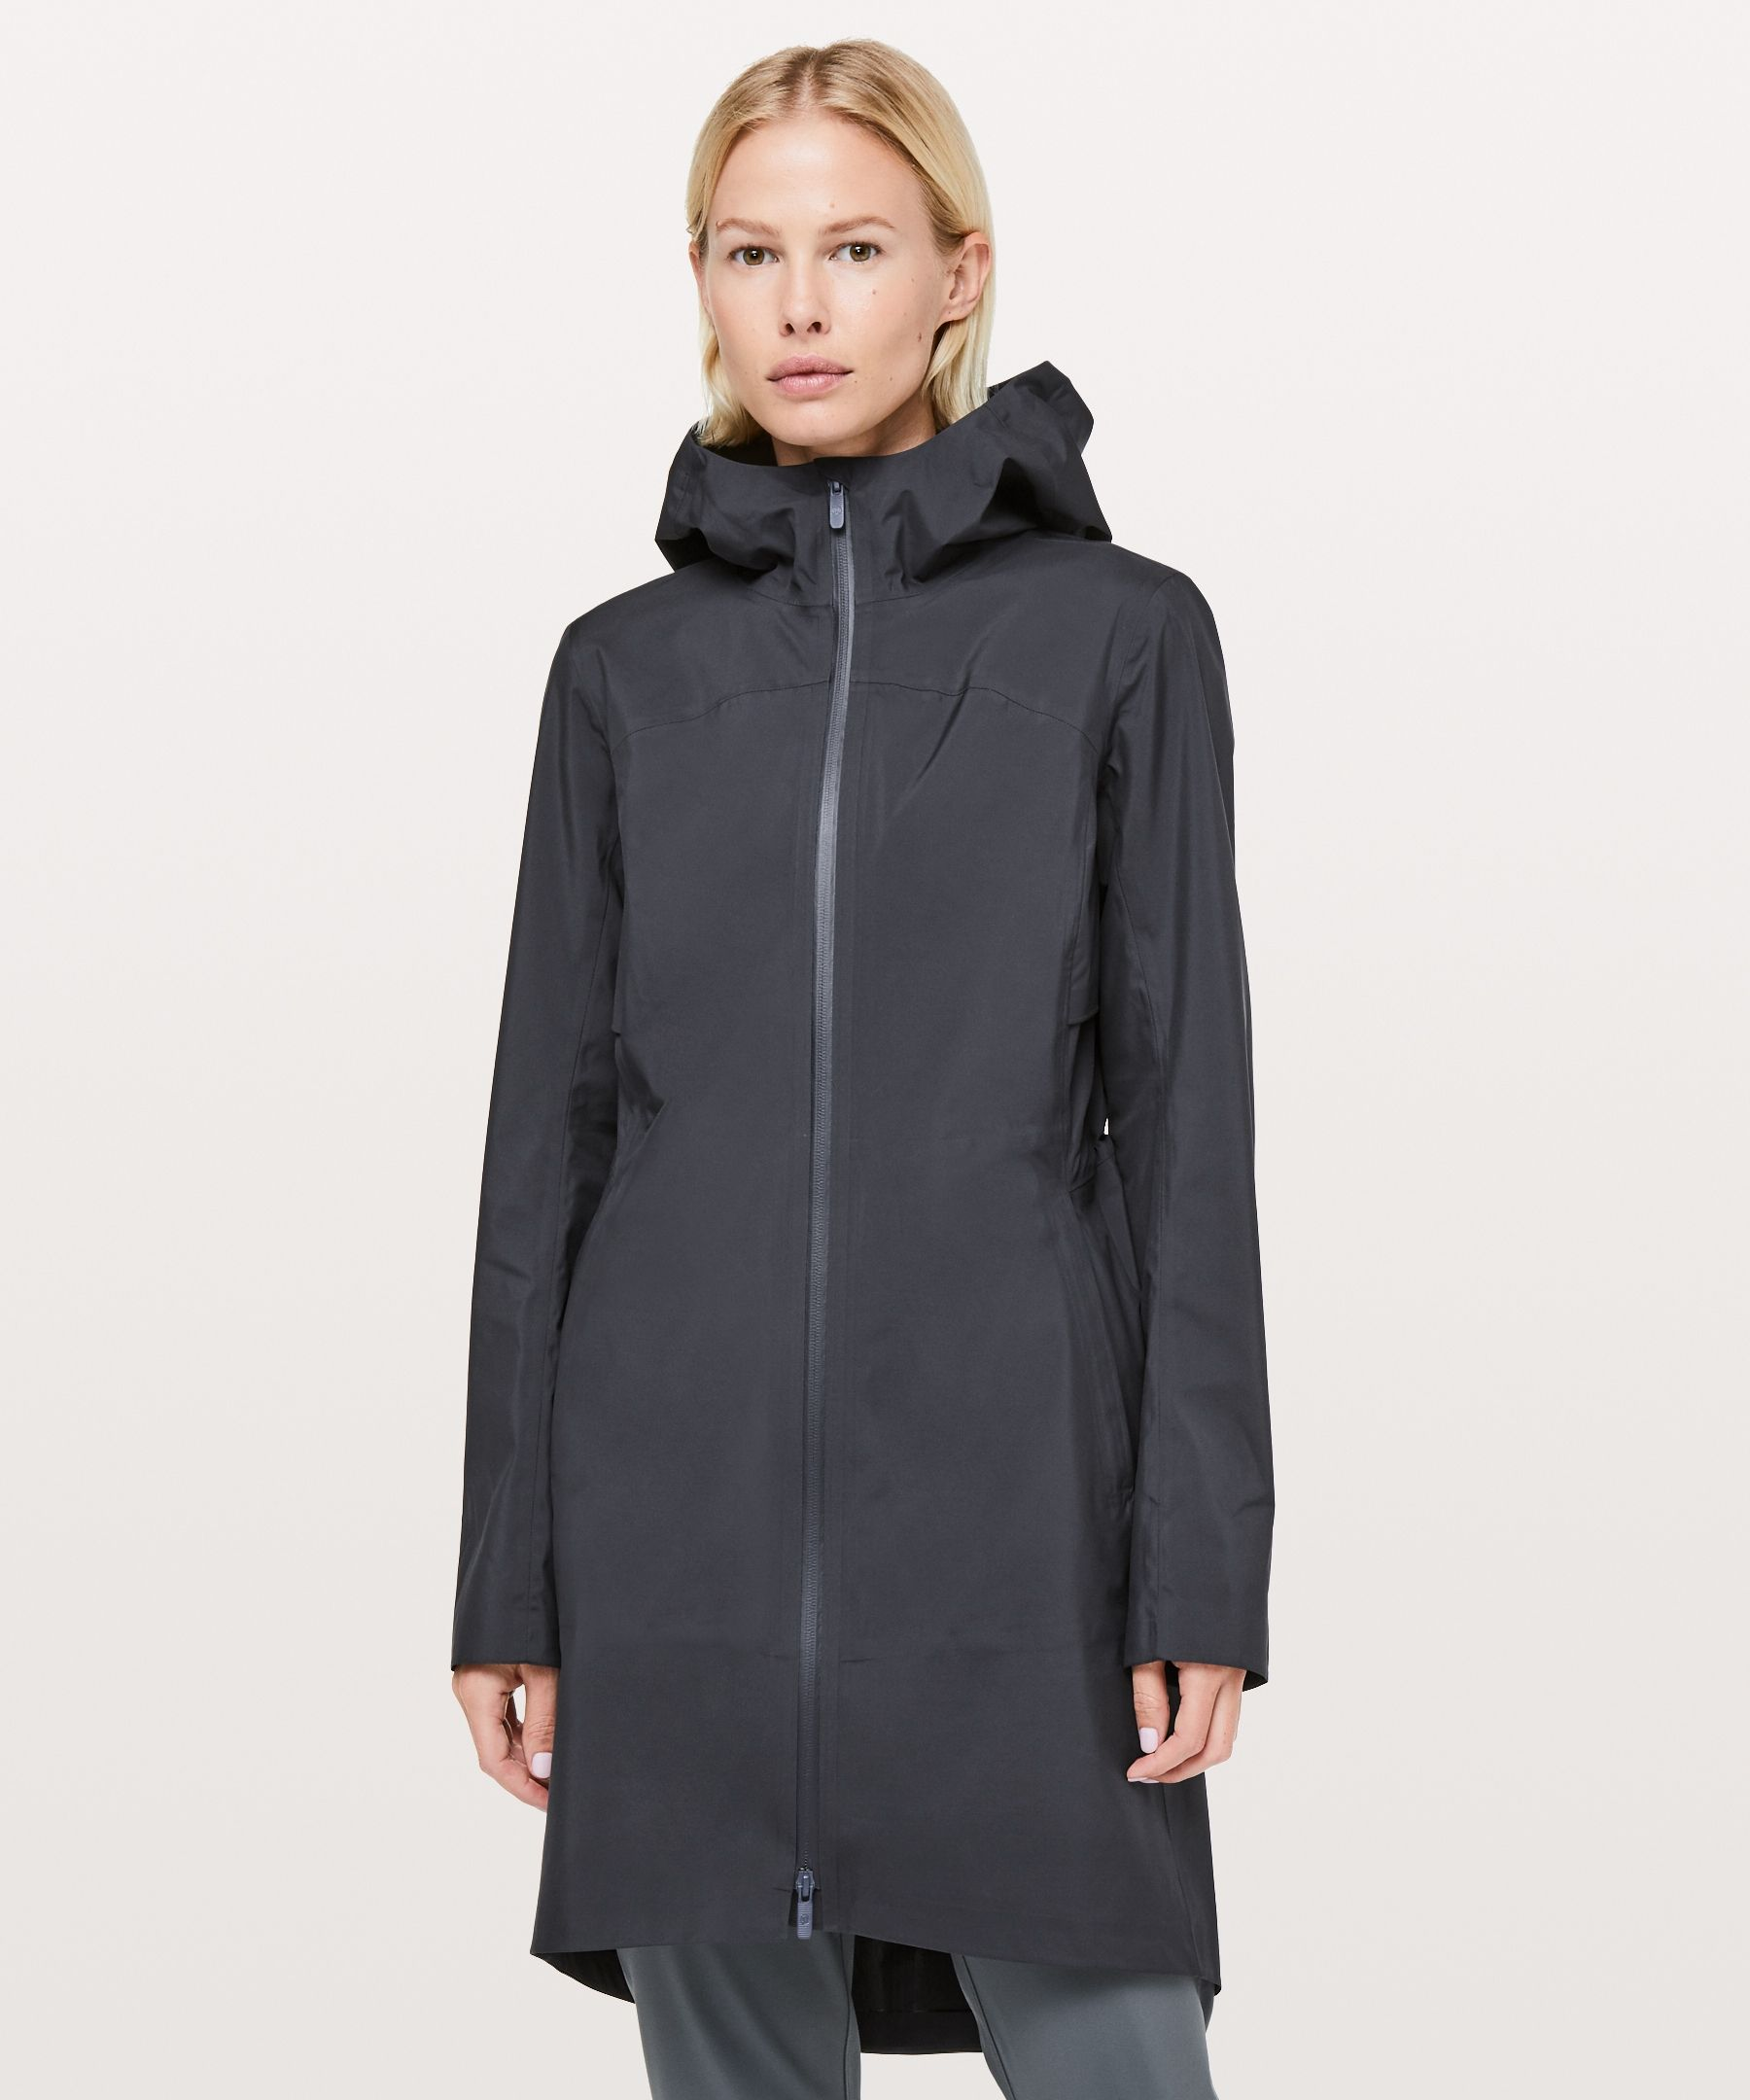 804d009b787 Lululemon Rain Rules Jacket - Lightweight, waterproof, and ...